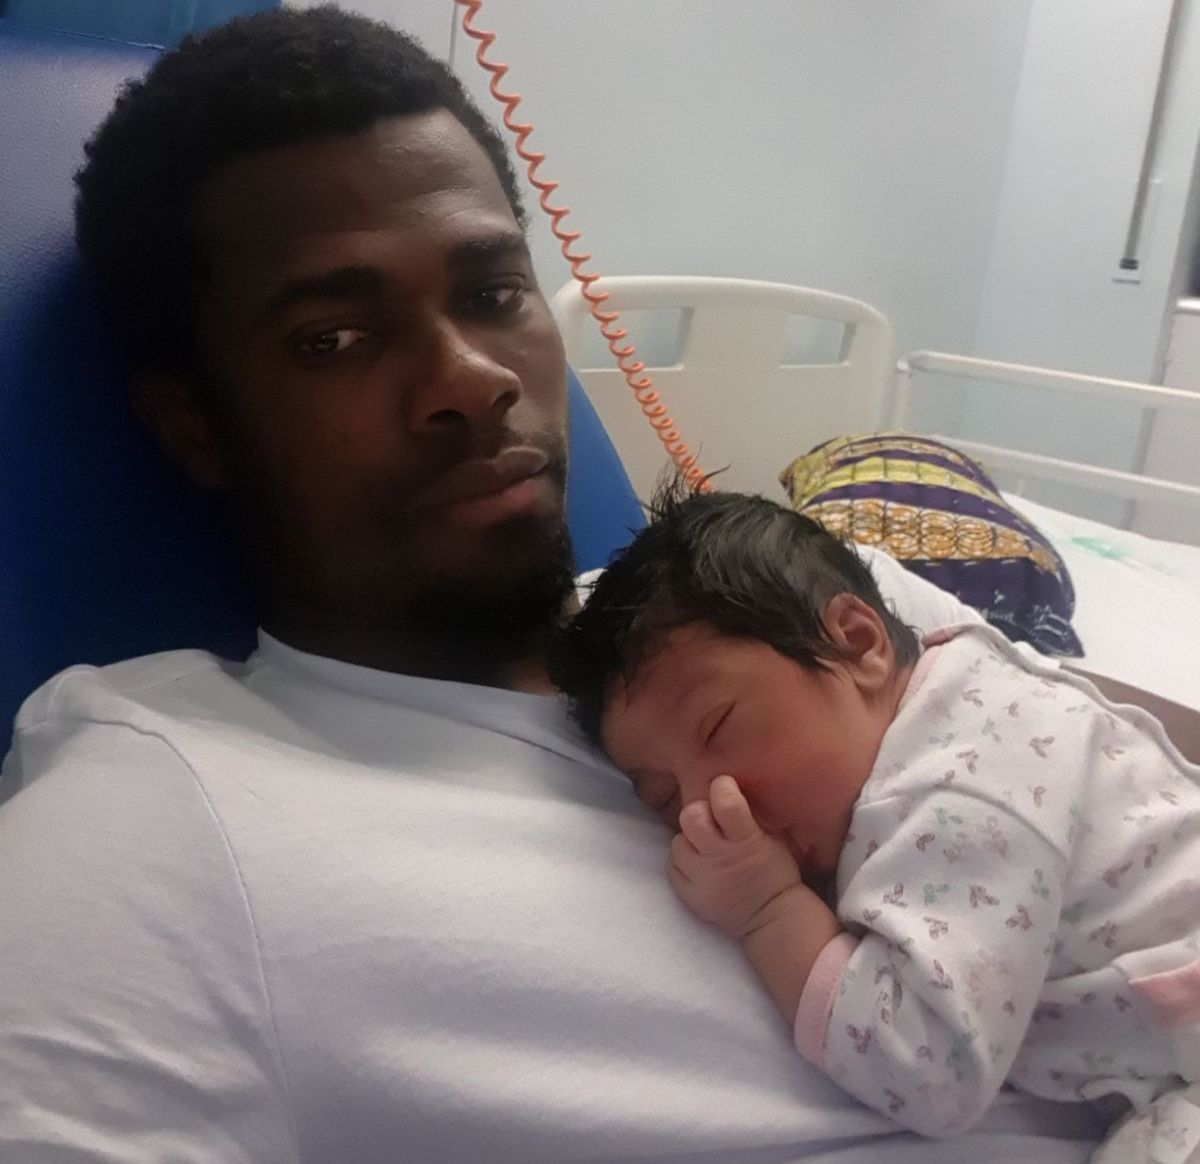 Mamelodi Sundowns goalkeeper Razak Brimah becomes father for the second time as partner delivers baby girl